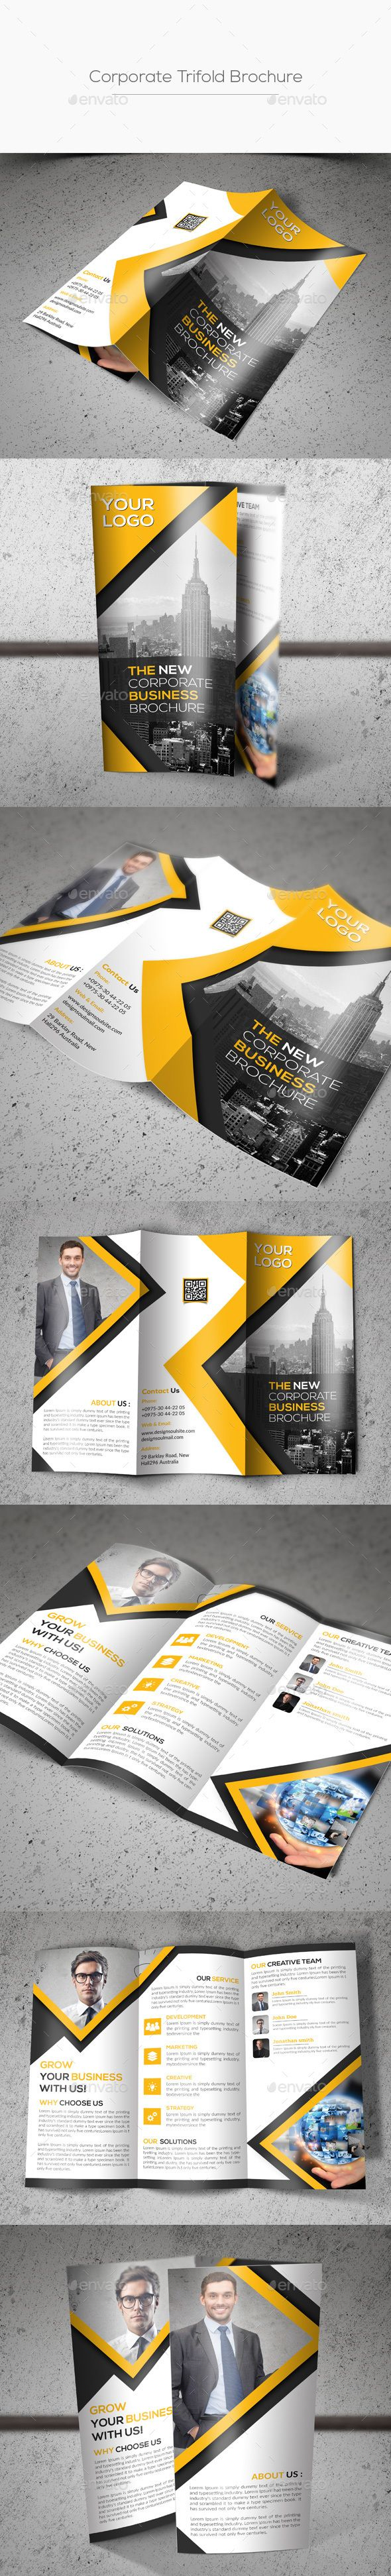 Corporate Trifold Brochure Template PSD #design Download: http://graphicriver.net/item/corporate-trifold-brochure/13906977?ref=ksioks